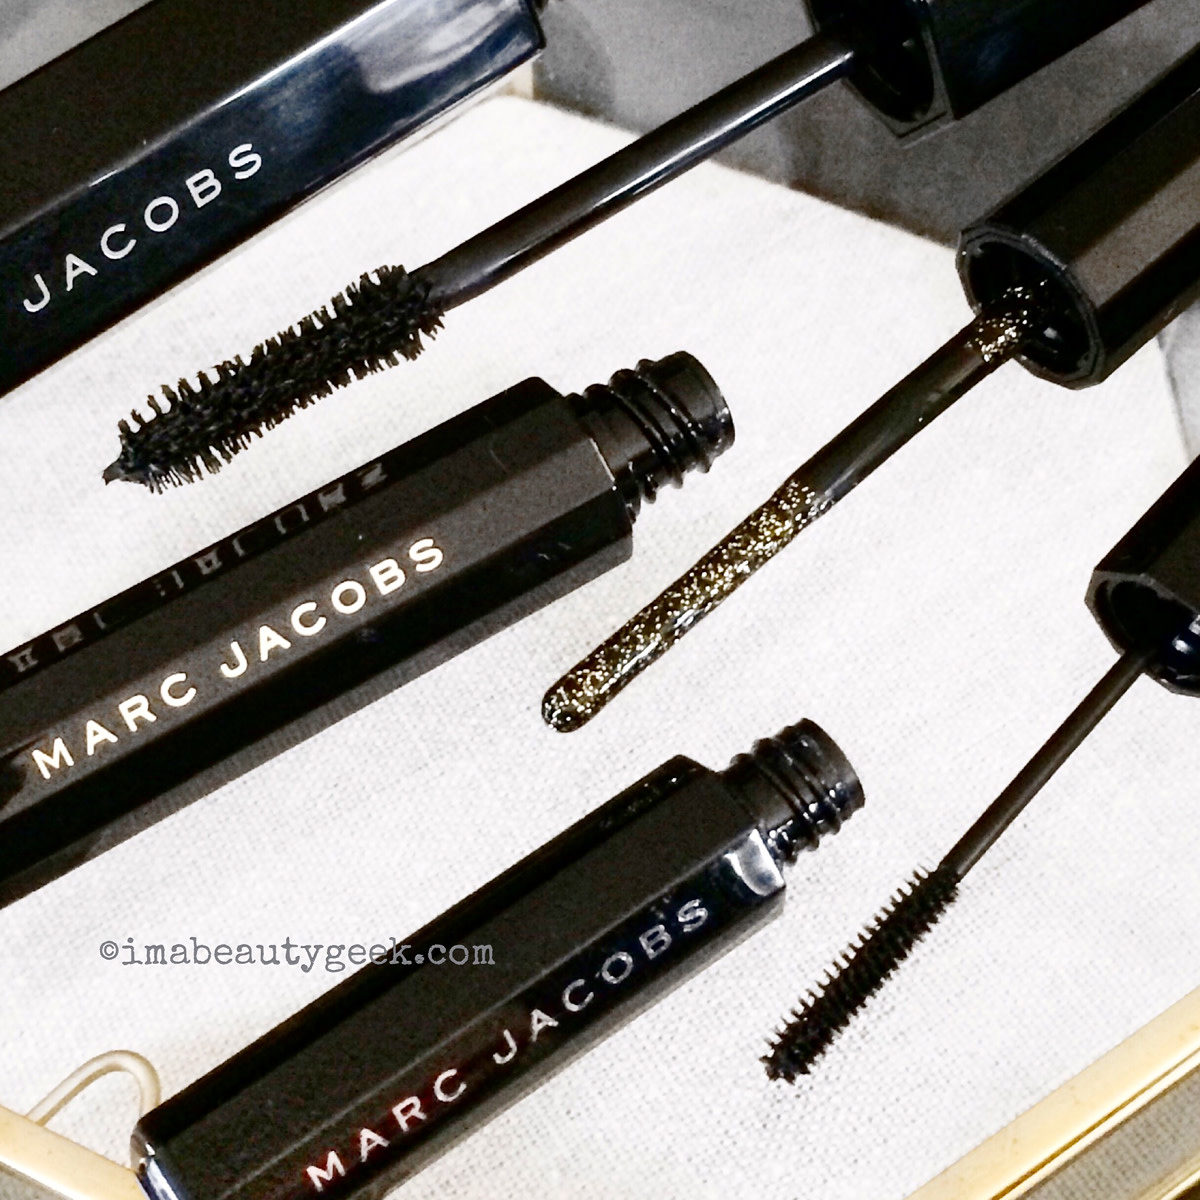 Marc Jacobs Spring 2016_Velvet Noir_Lamé Noir_Feather Noir mascaras